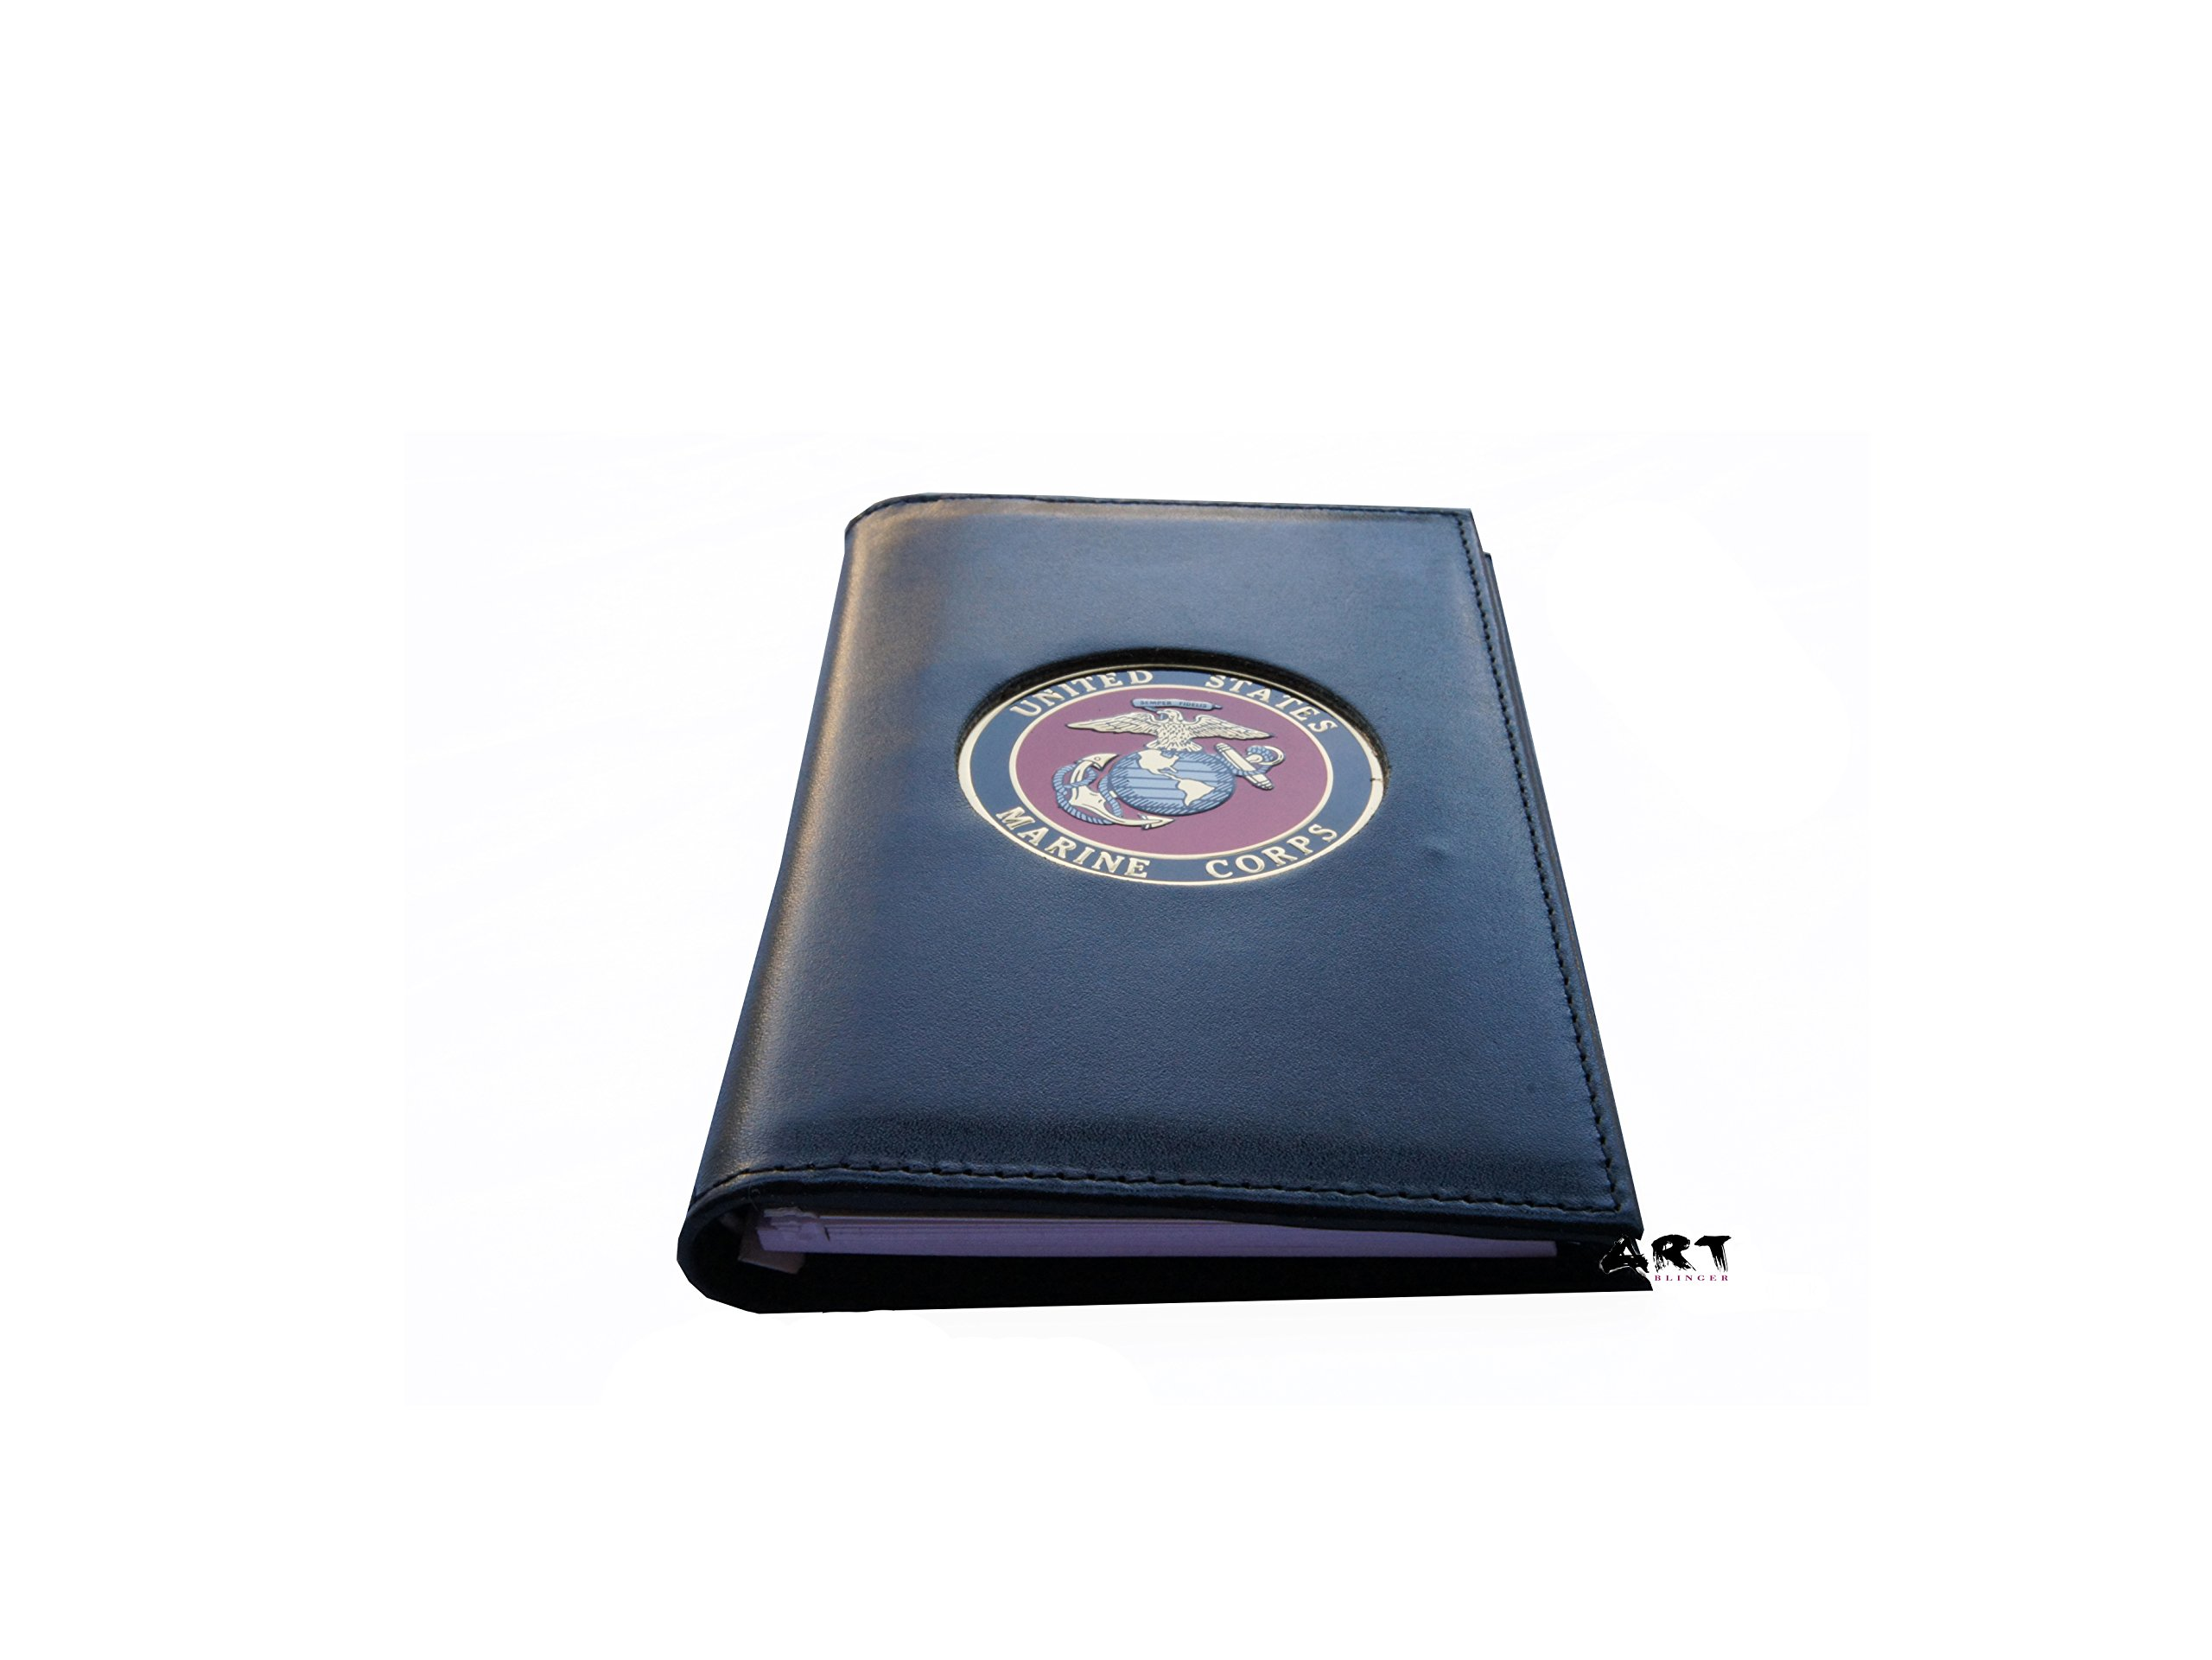 Military Sprial Notebook Cover, US MARINE CORPS Padfolio with Medallion - 3 x 5 by Officially Licensed Authorized Military Wallets